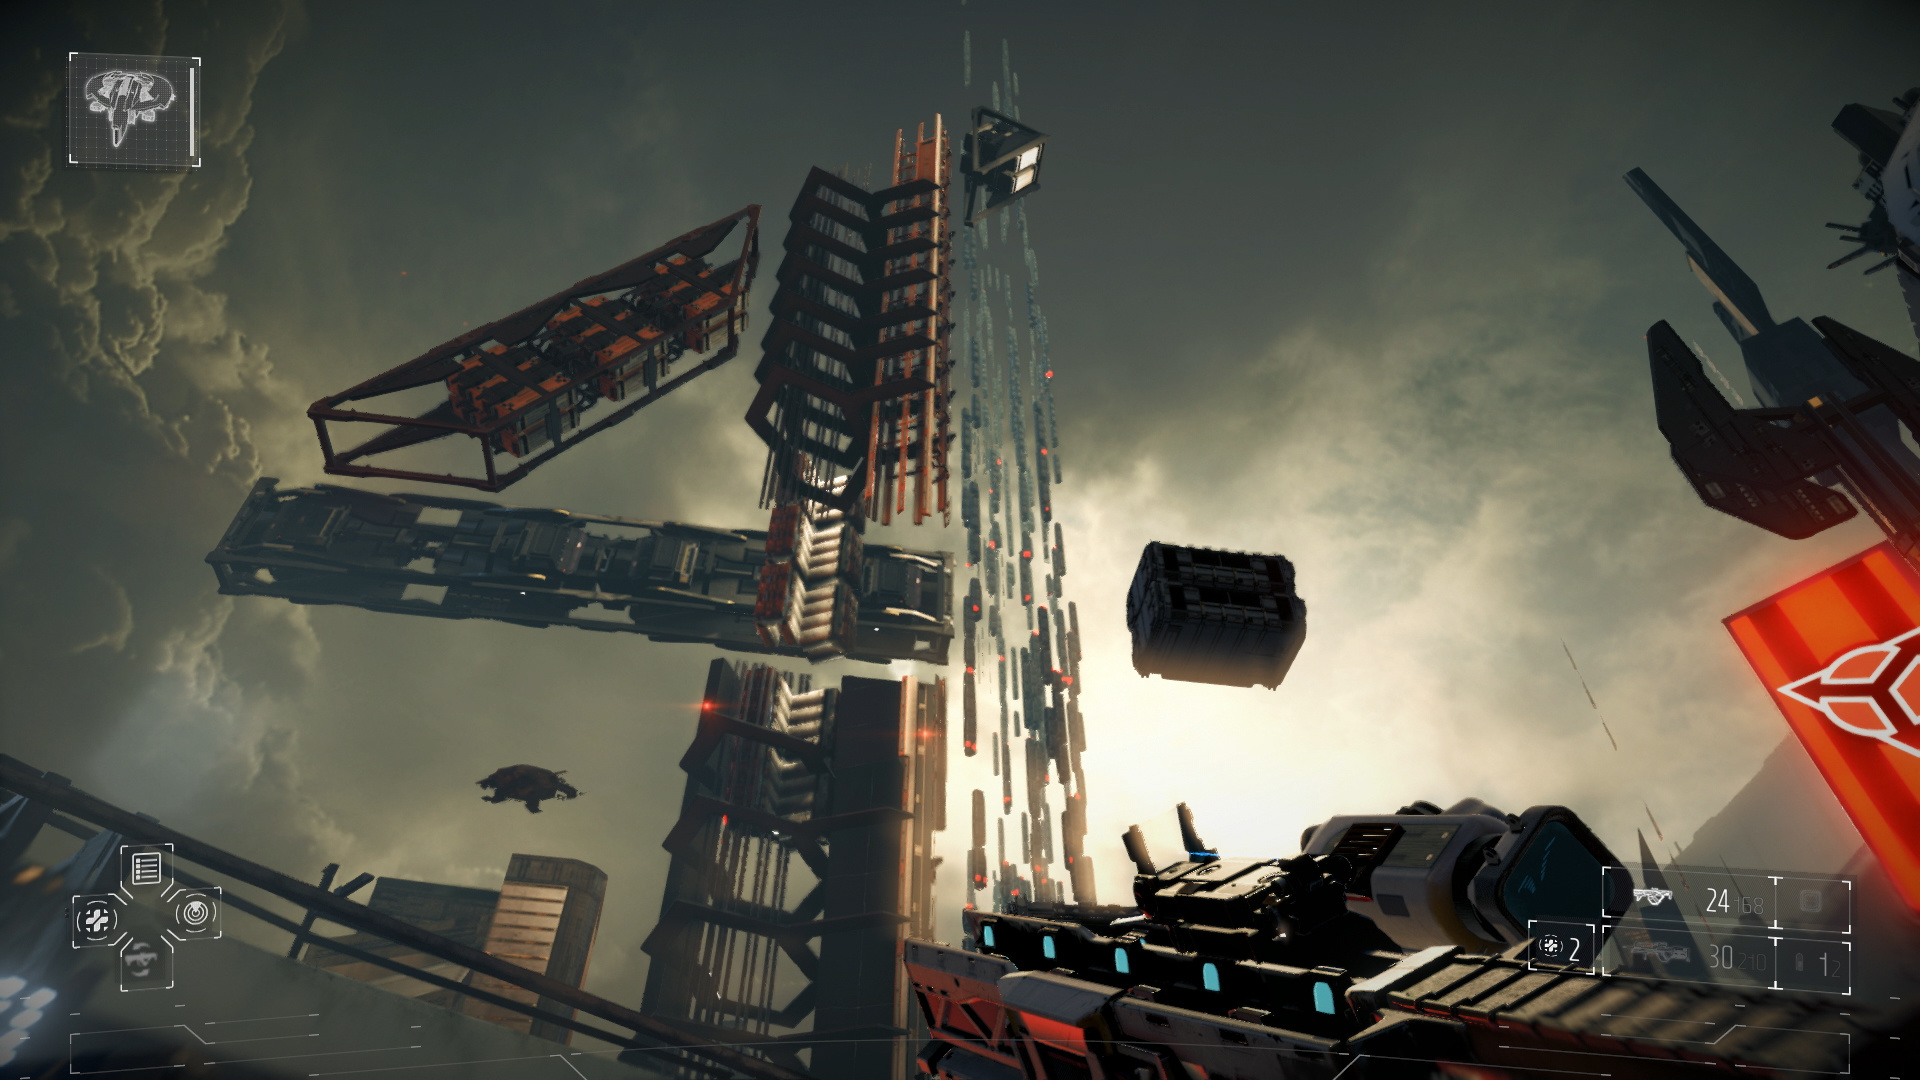 Killzone Shadow Fall Ps4 Wallpaper Ps4 Ad Campaign Set To Air On Channel 4 In The Lead Up To